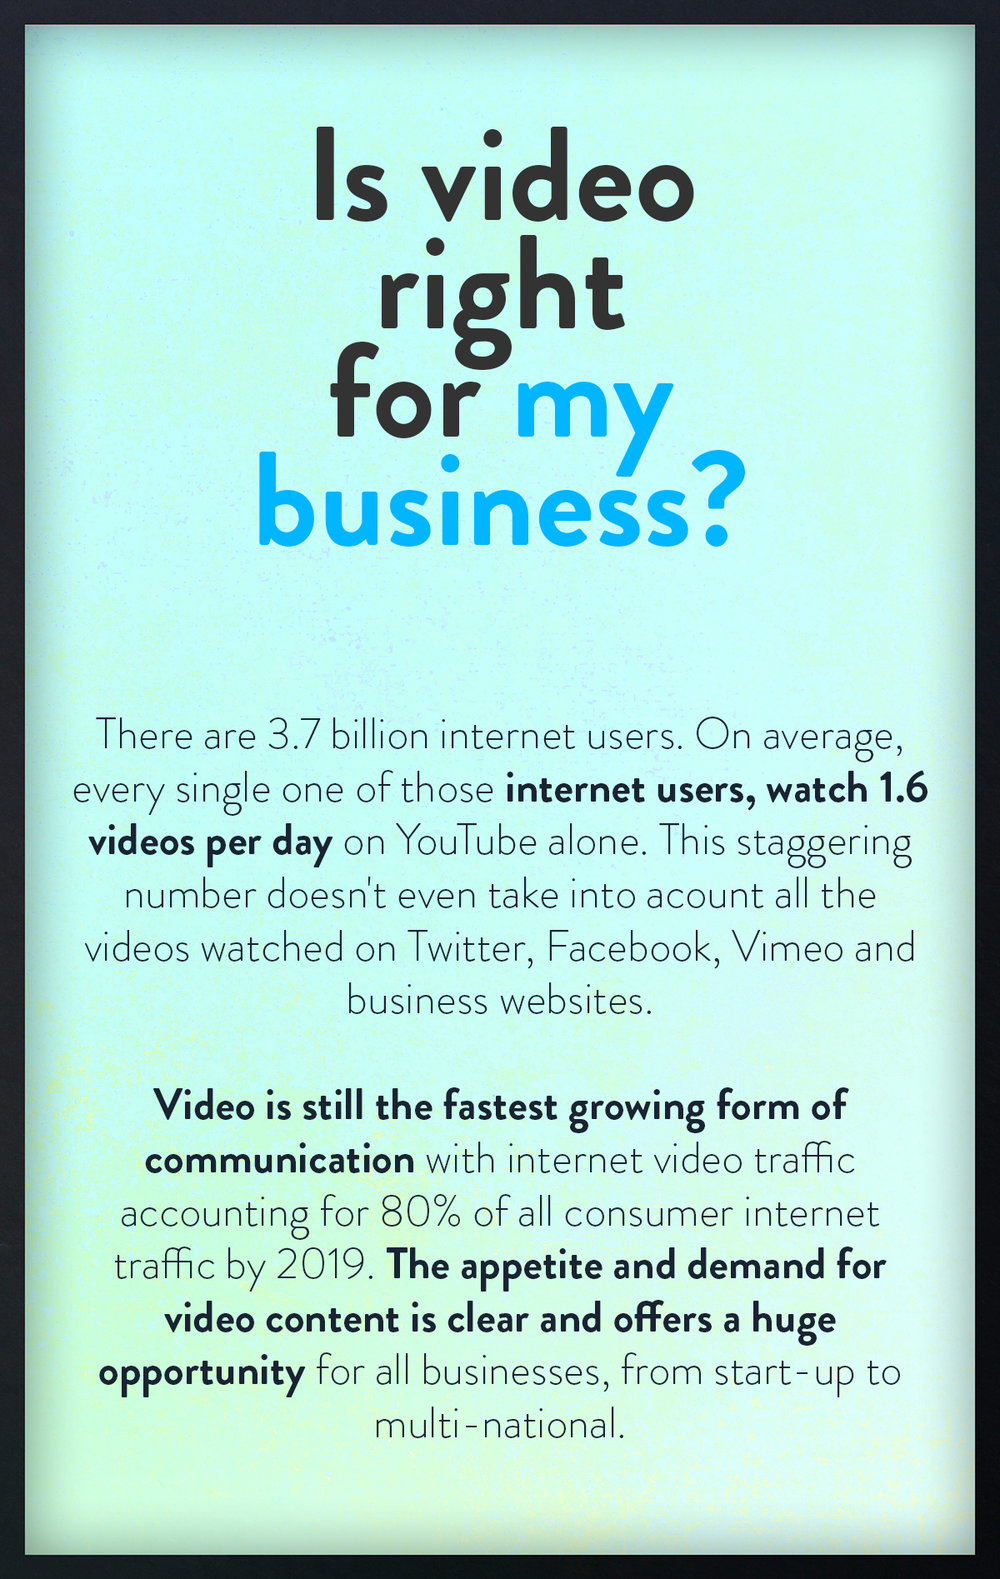 is-video-right-for-my-business.jpg